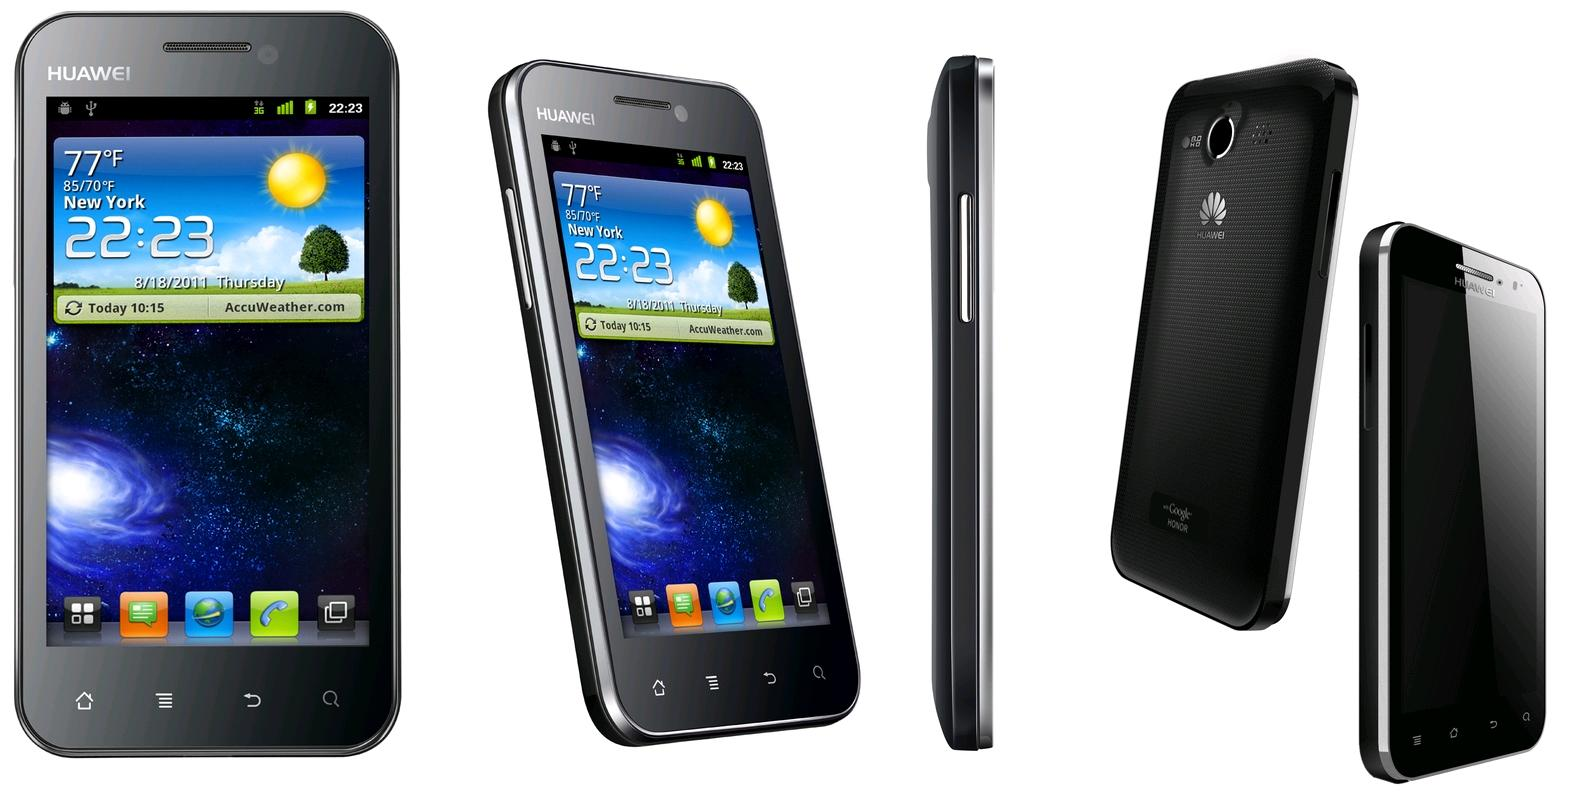 Huawei Honor U8860 Android 4.0 ICS smart phone PDA 3G GPS